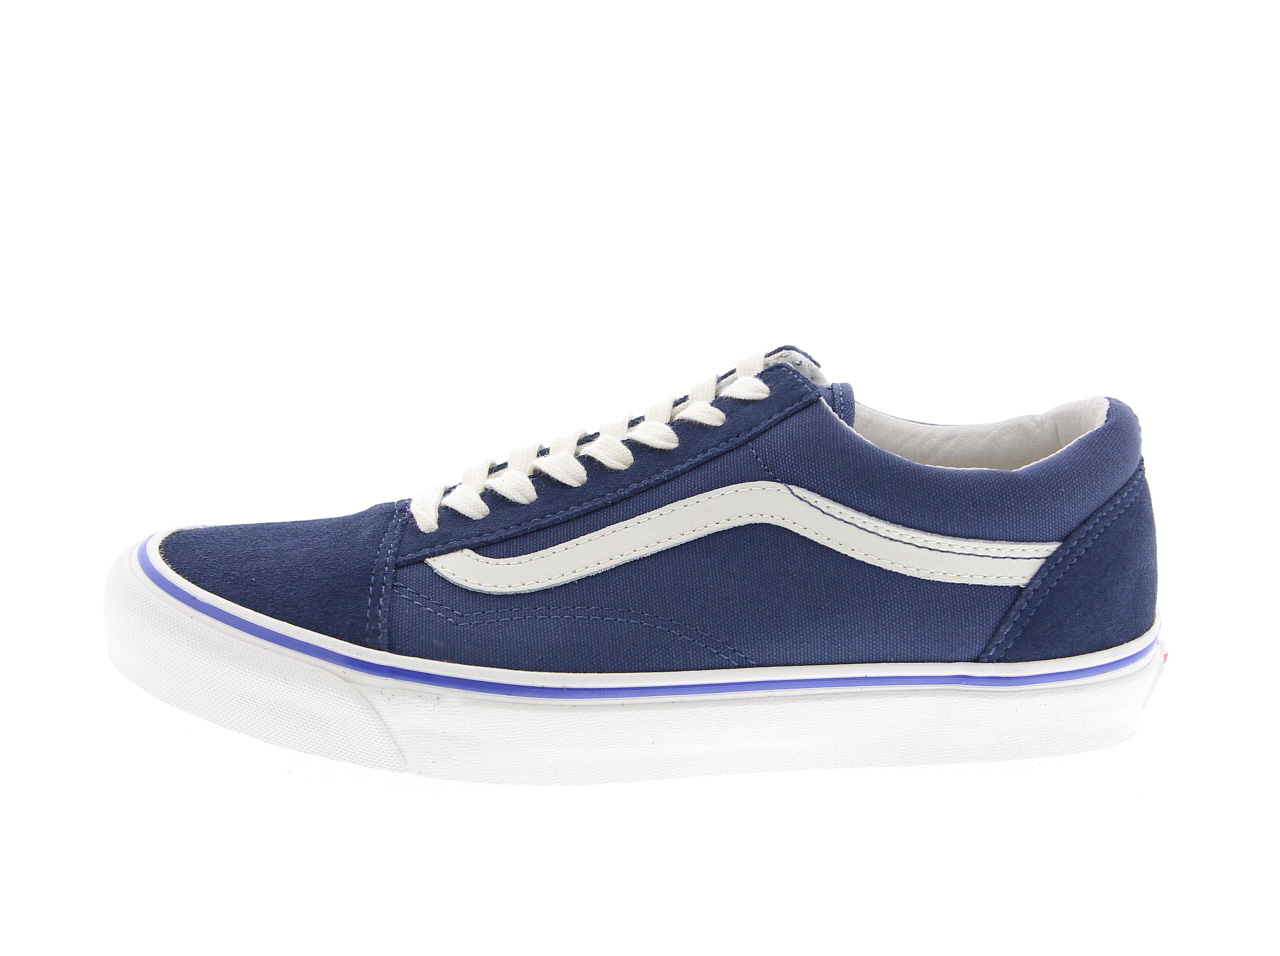 vans old skool lx blue